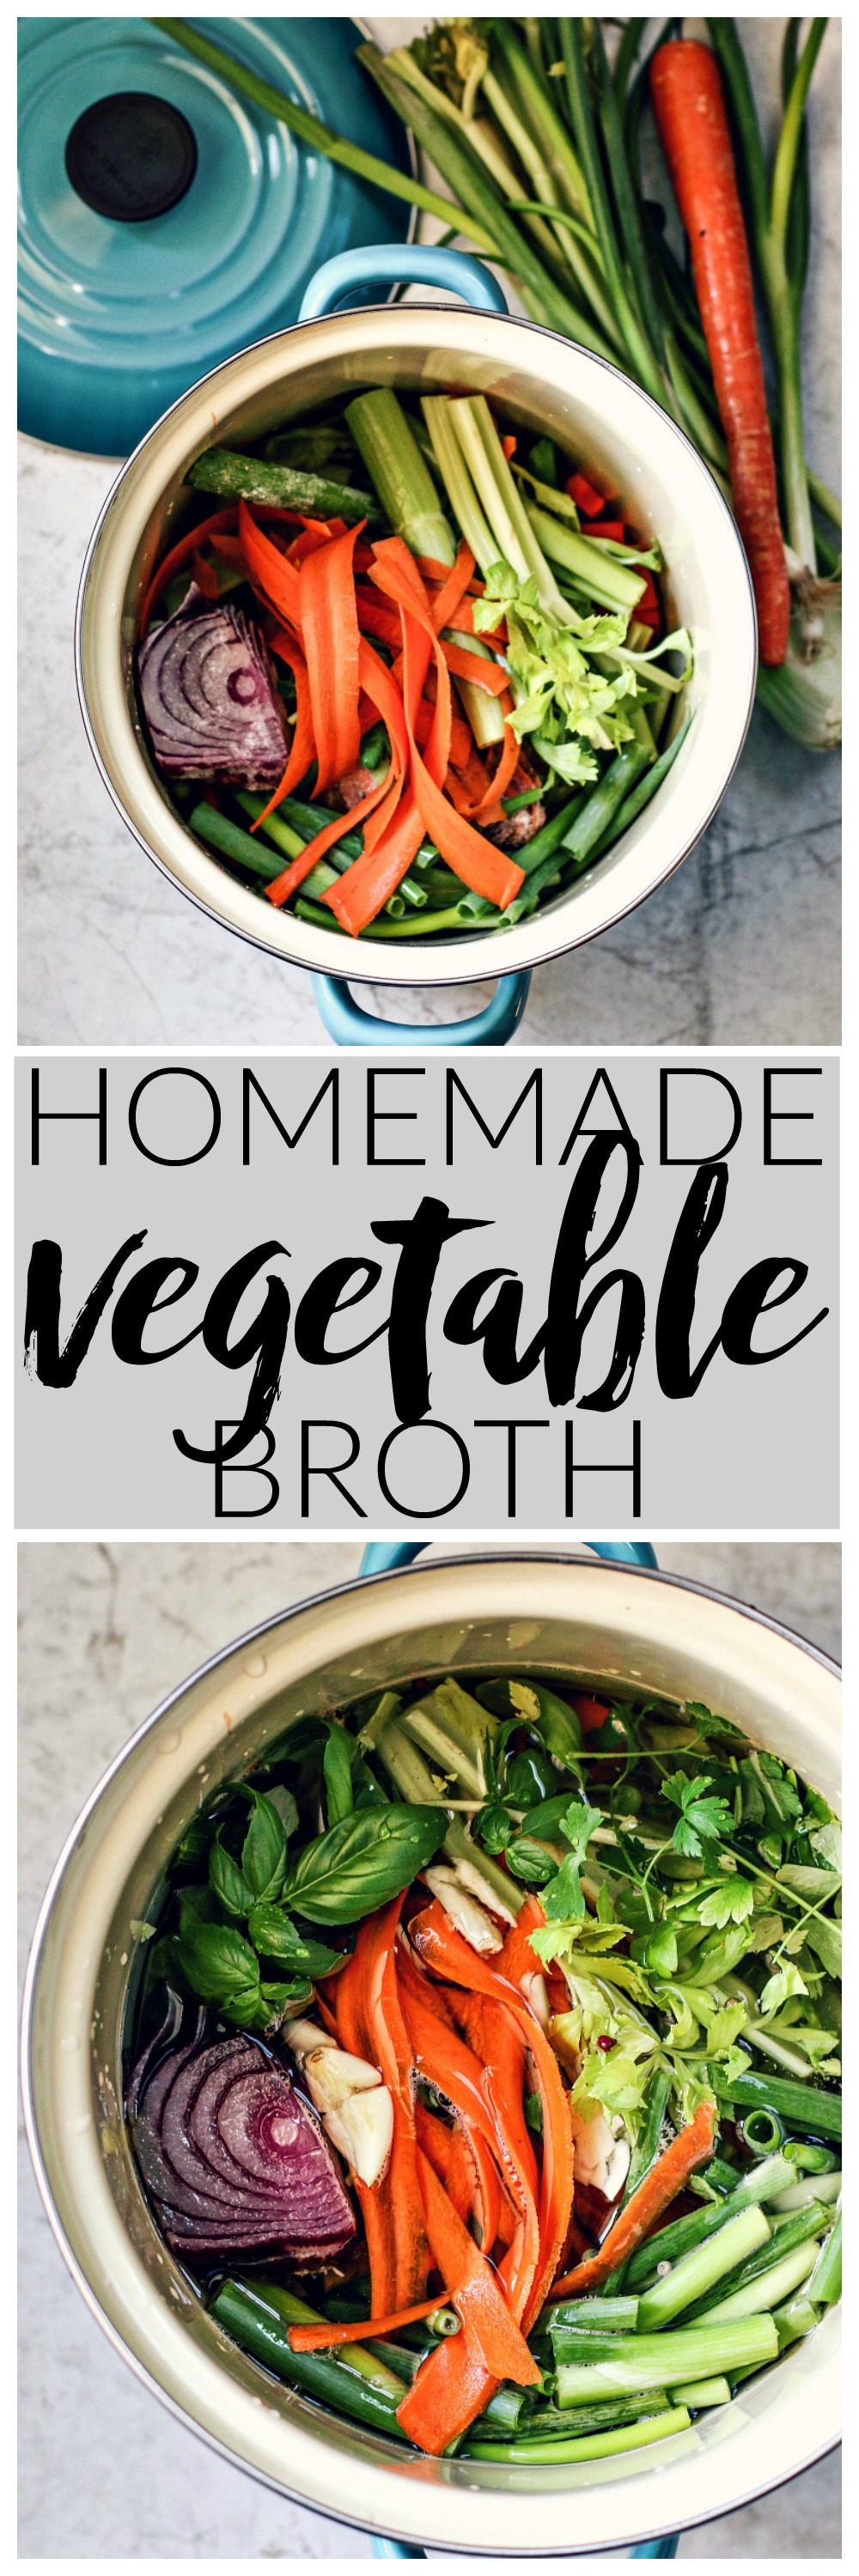 Homemade Vegetable Broth | Killing Thyme